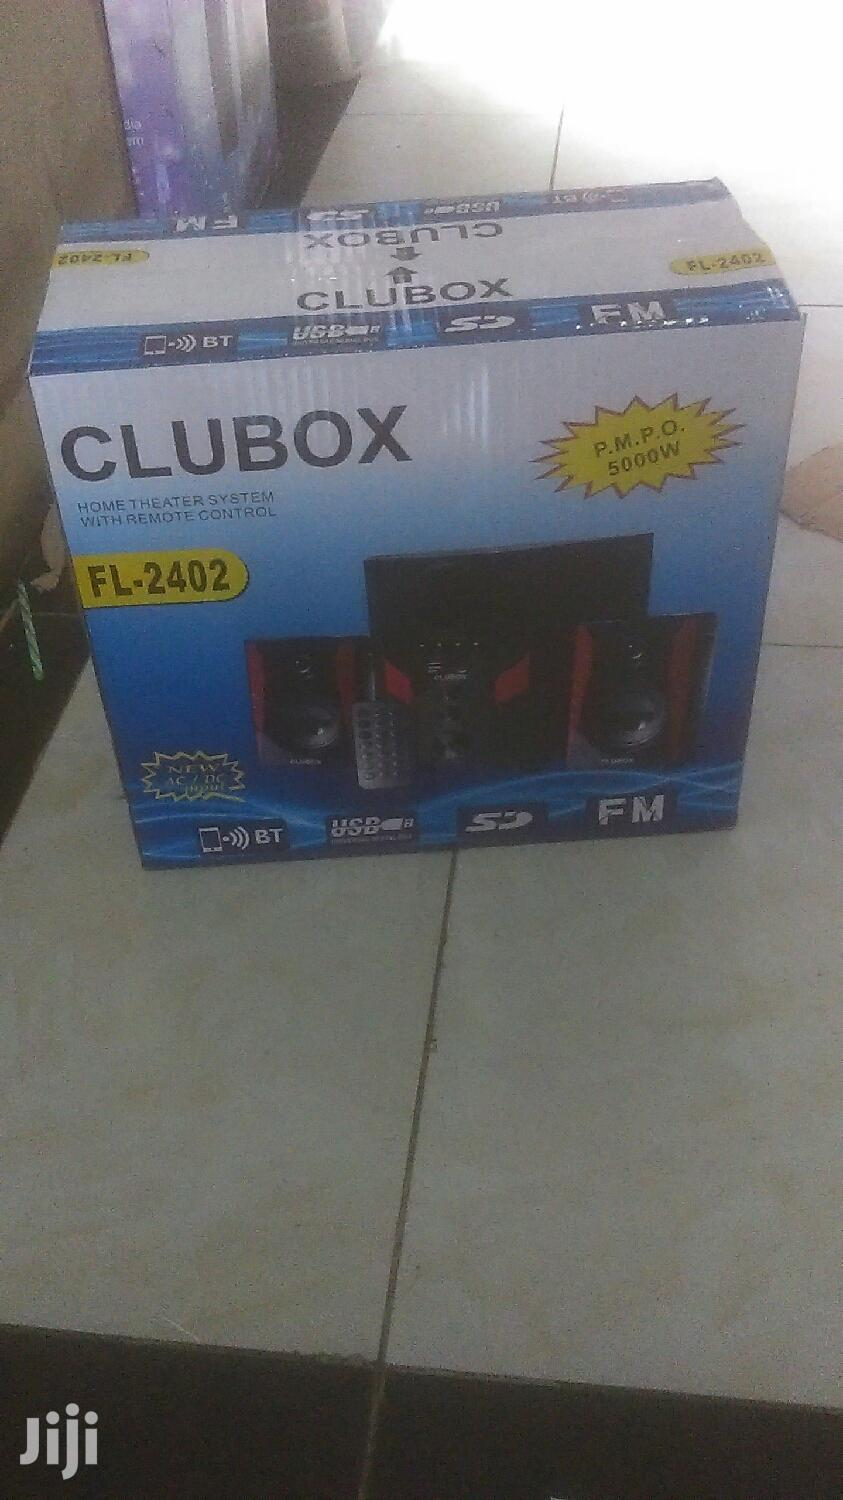 Clubox 2.1 Subwoofer | Audio & Music Equipment for sale in Nairobi Central, Nairobi, Kenya